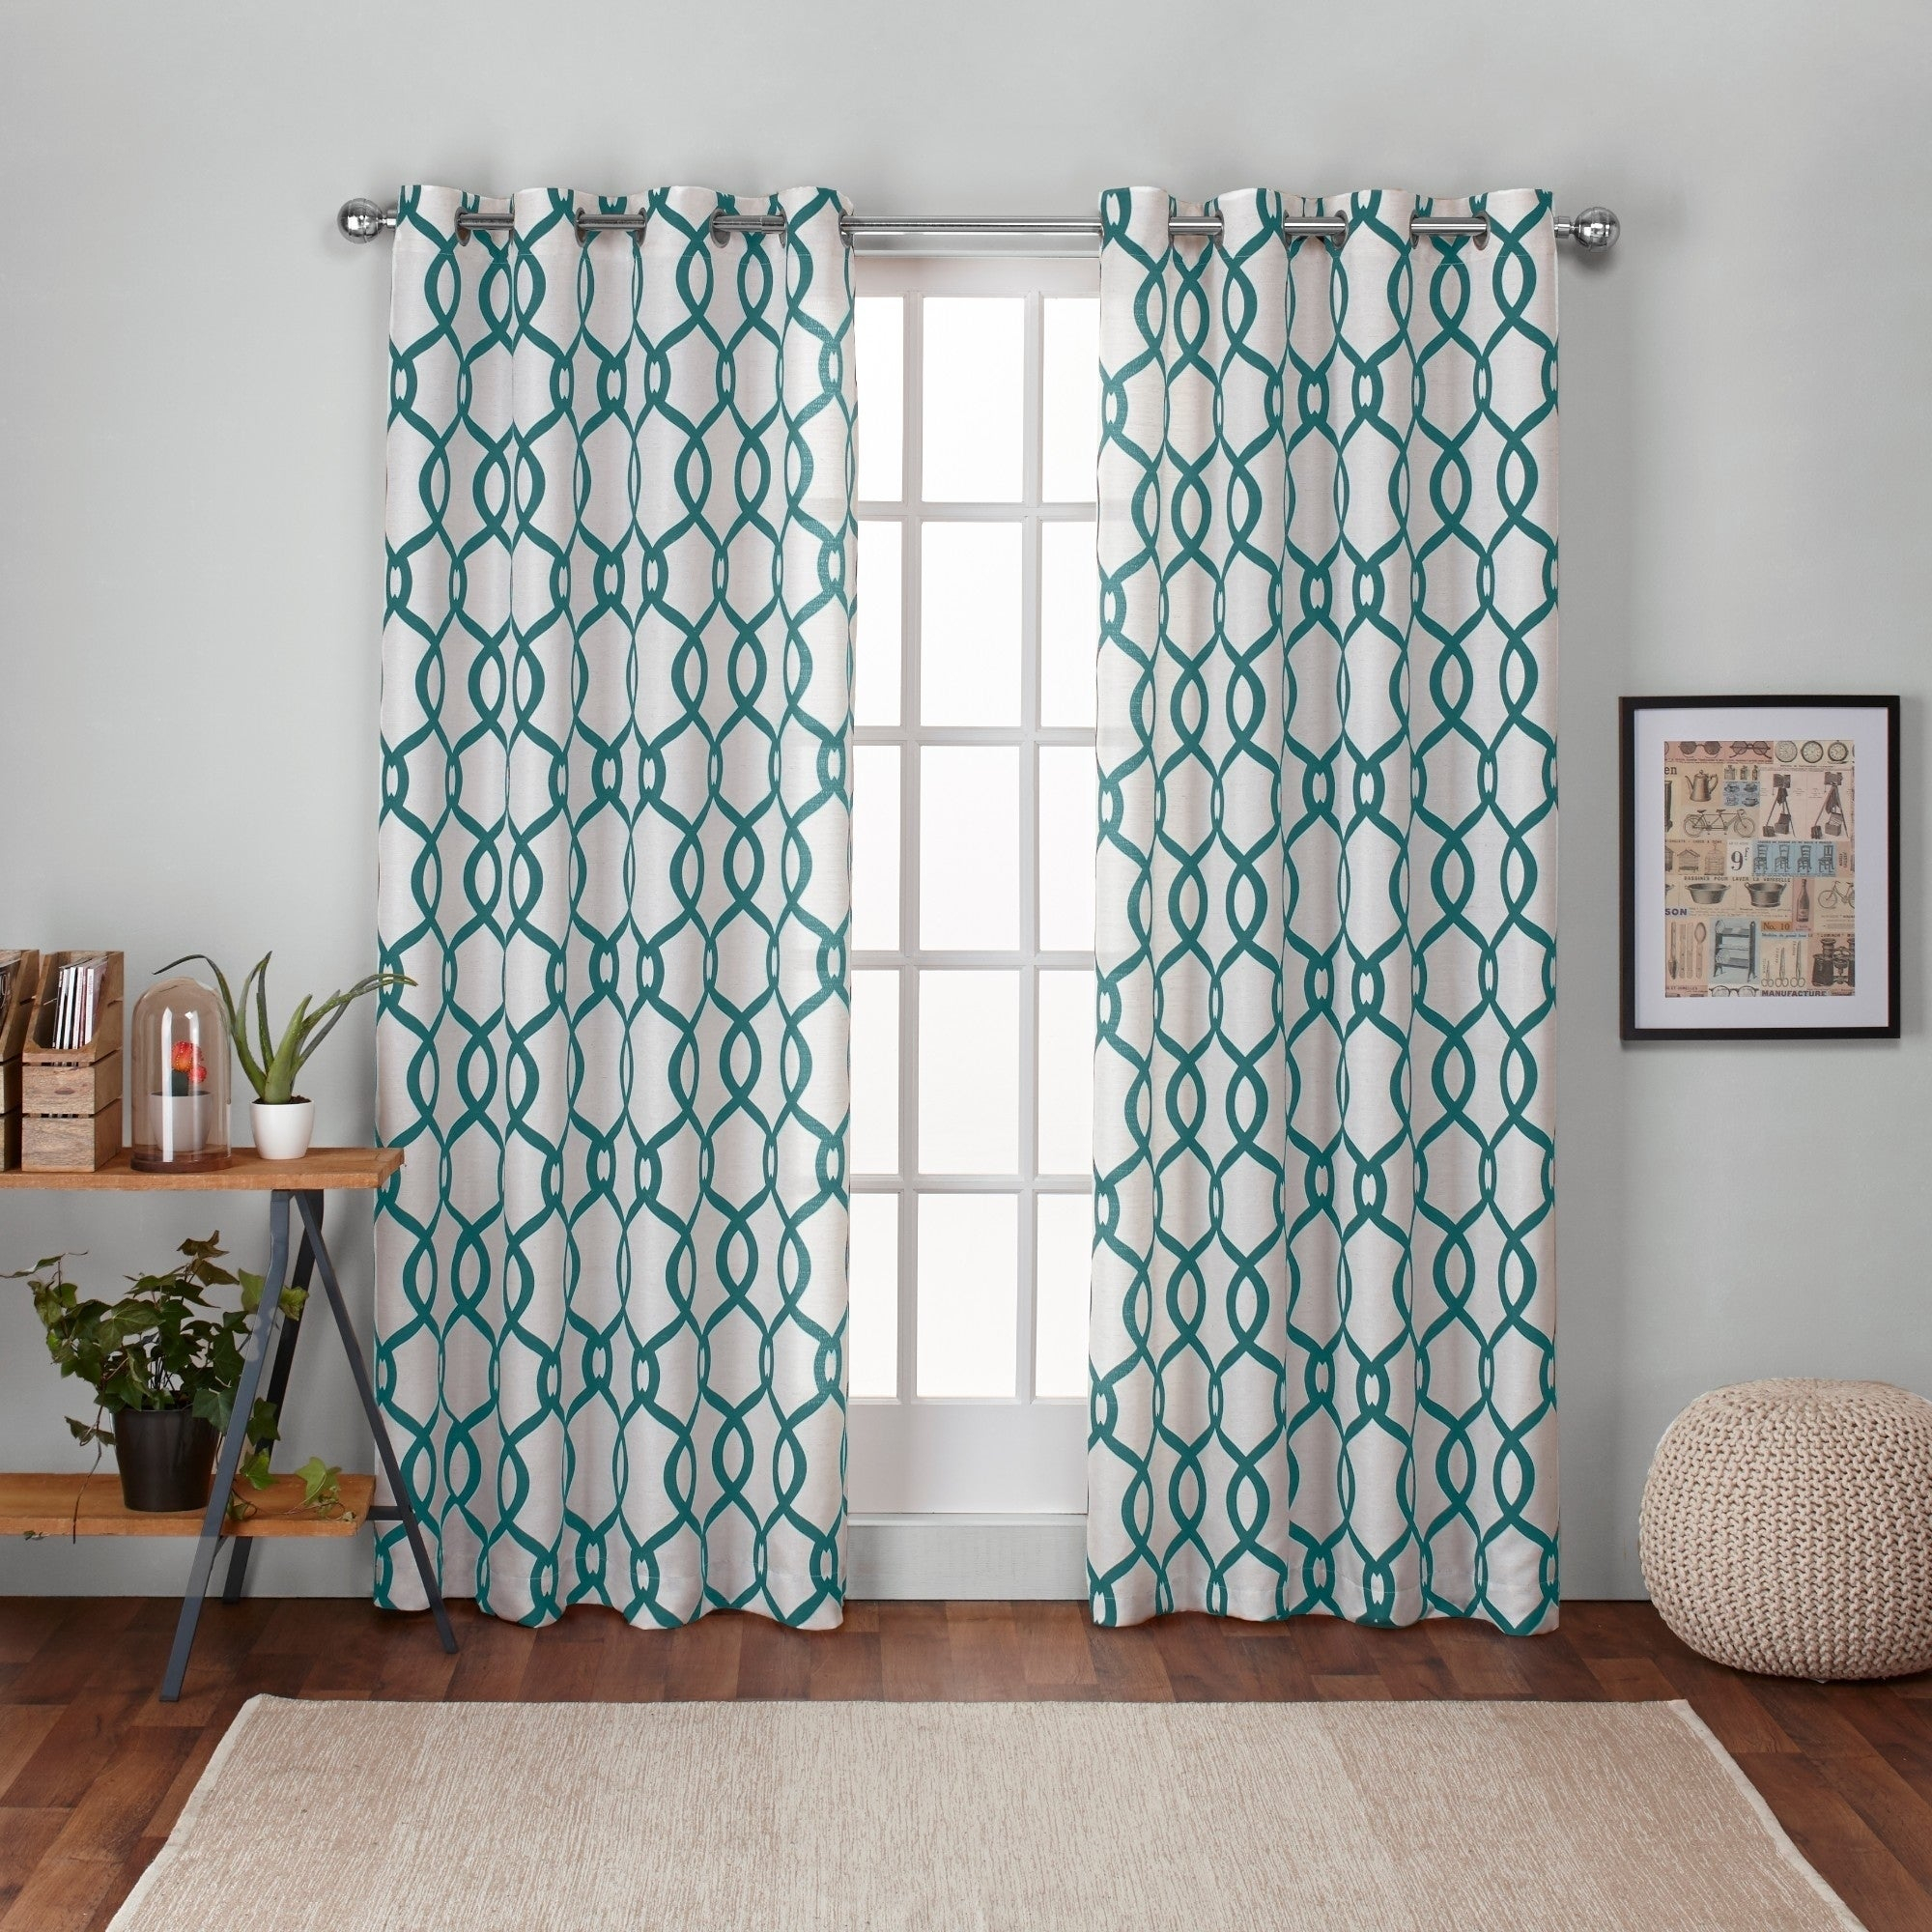 Details About Ati Home Kochi Linen Blend Window Grommet Top Curtain Panel Pair Regarding Twig Insulated Blackout Curtain Panel Pairs With Grommet Top (View 23 of 30)